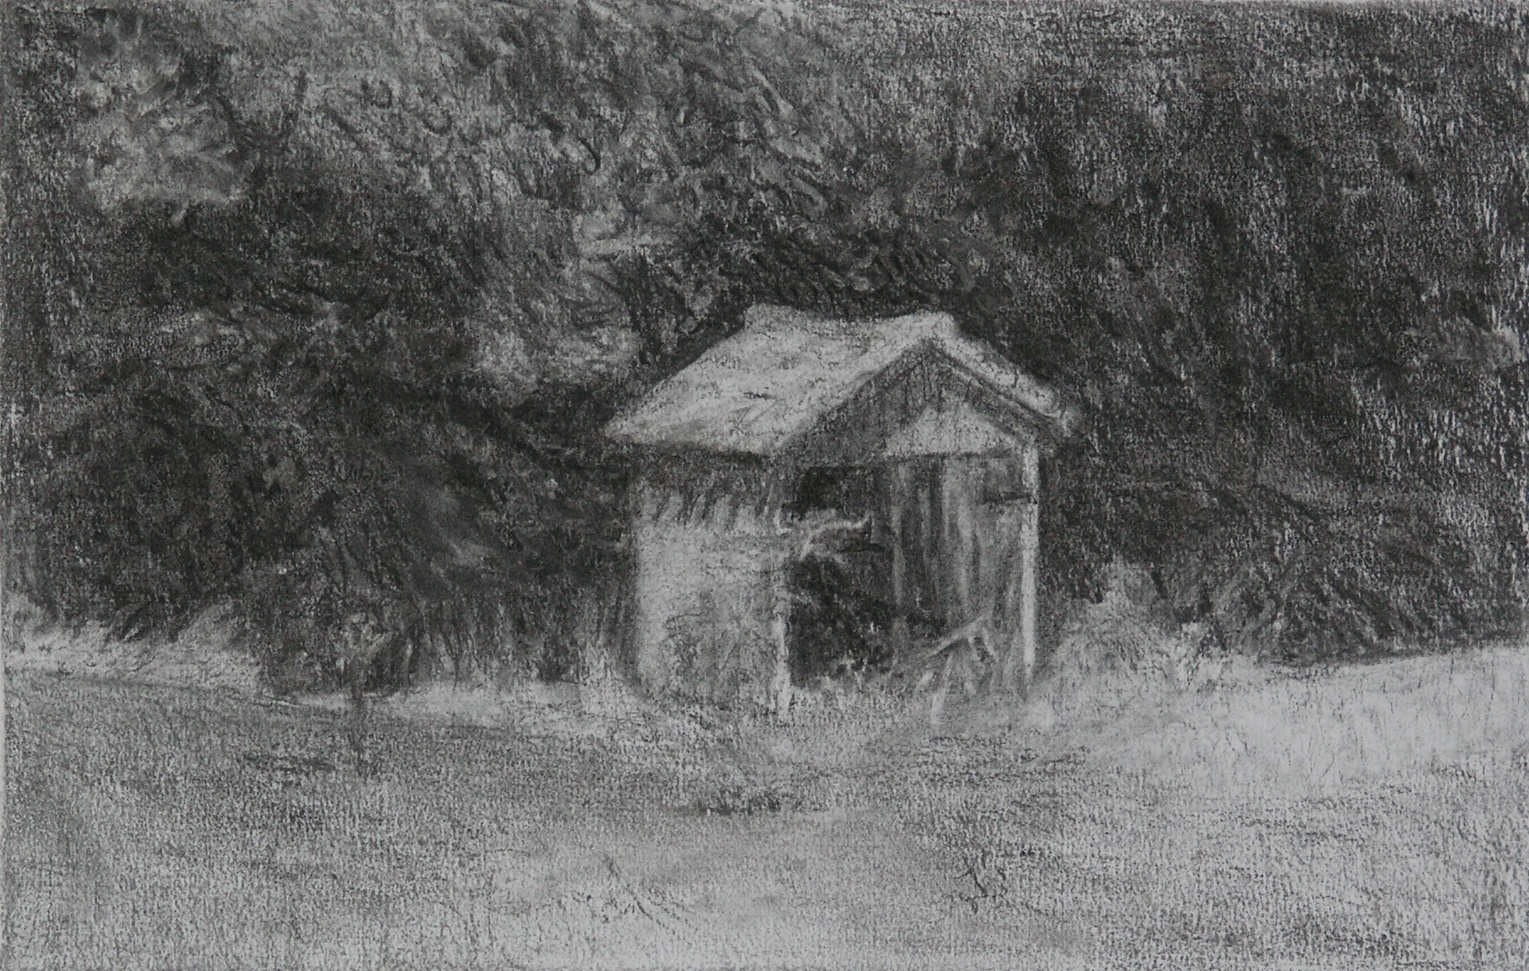 The little hut